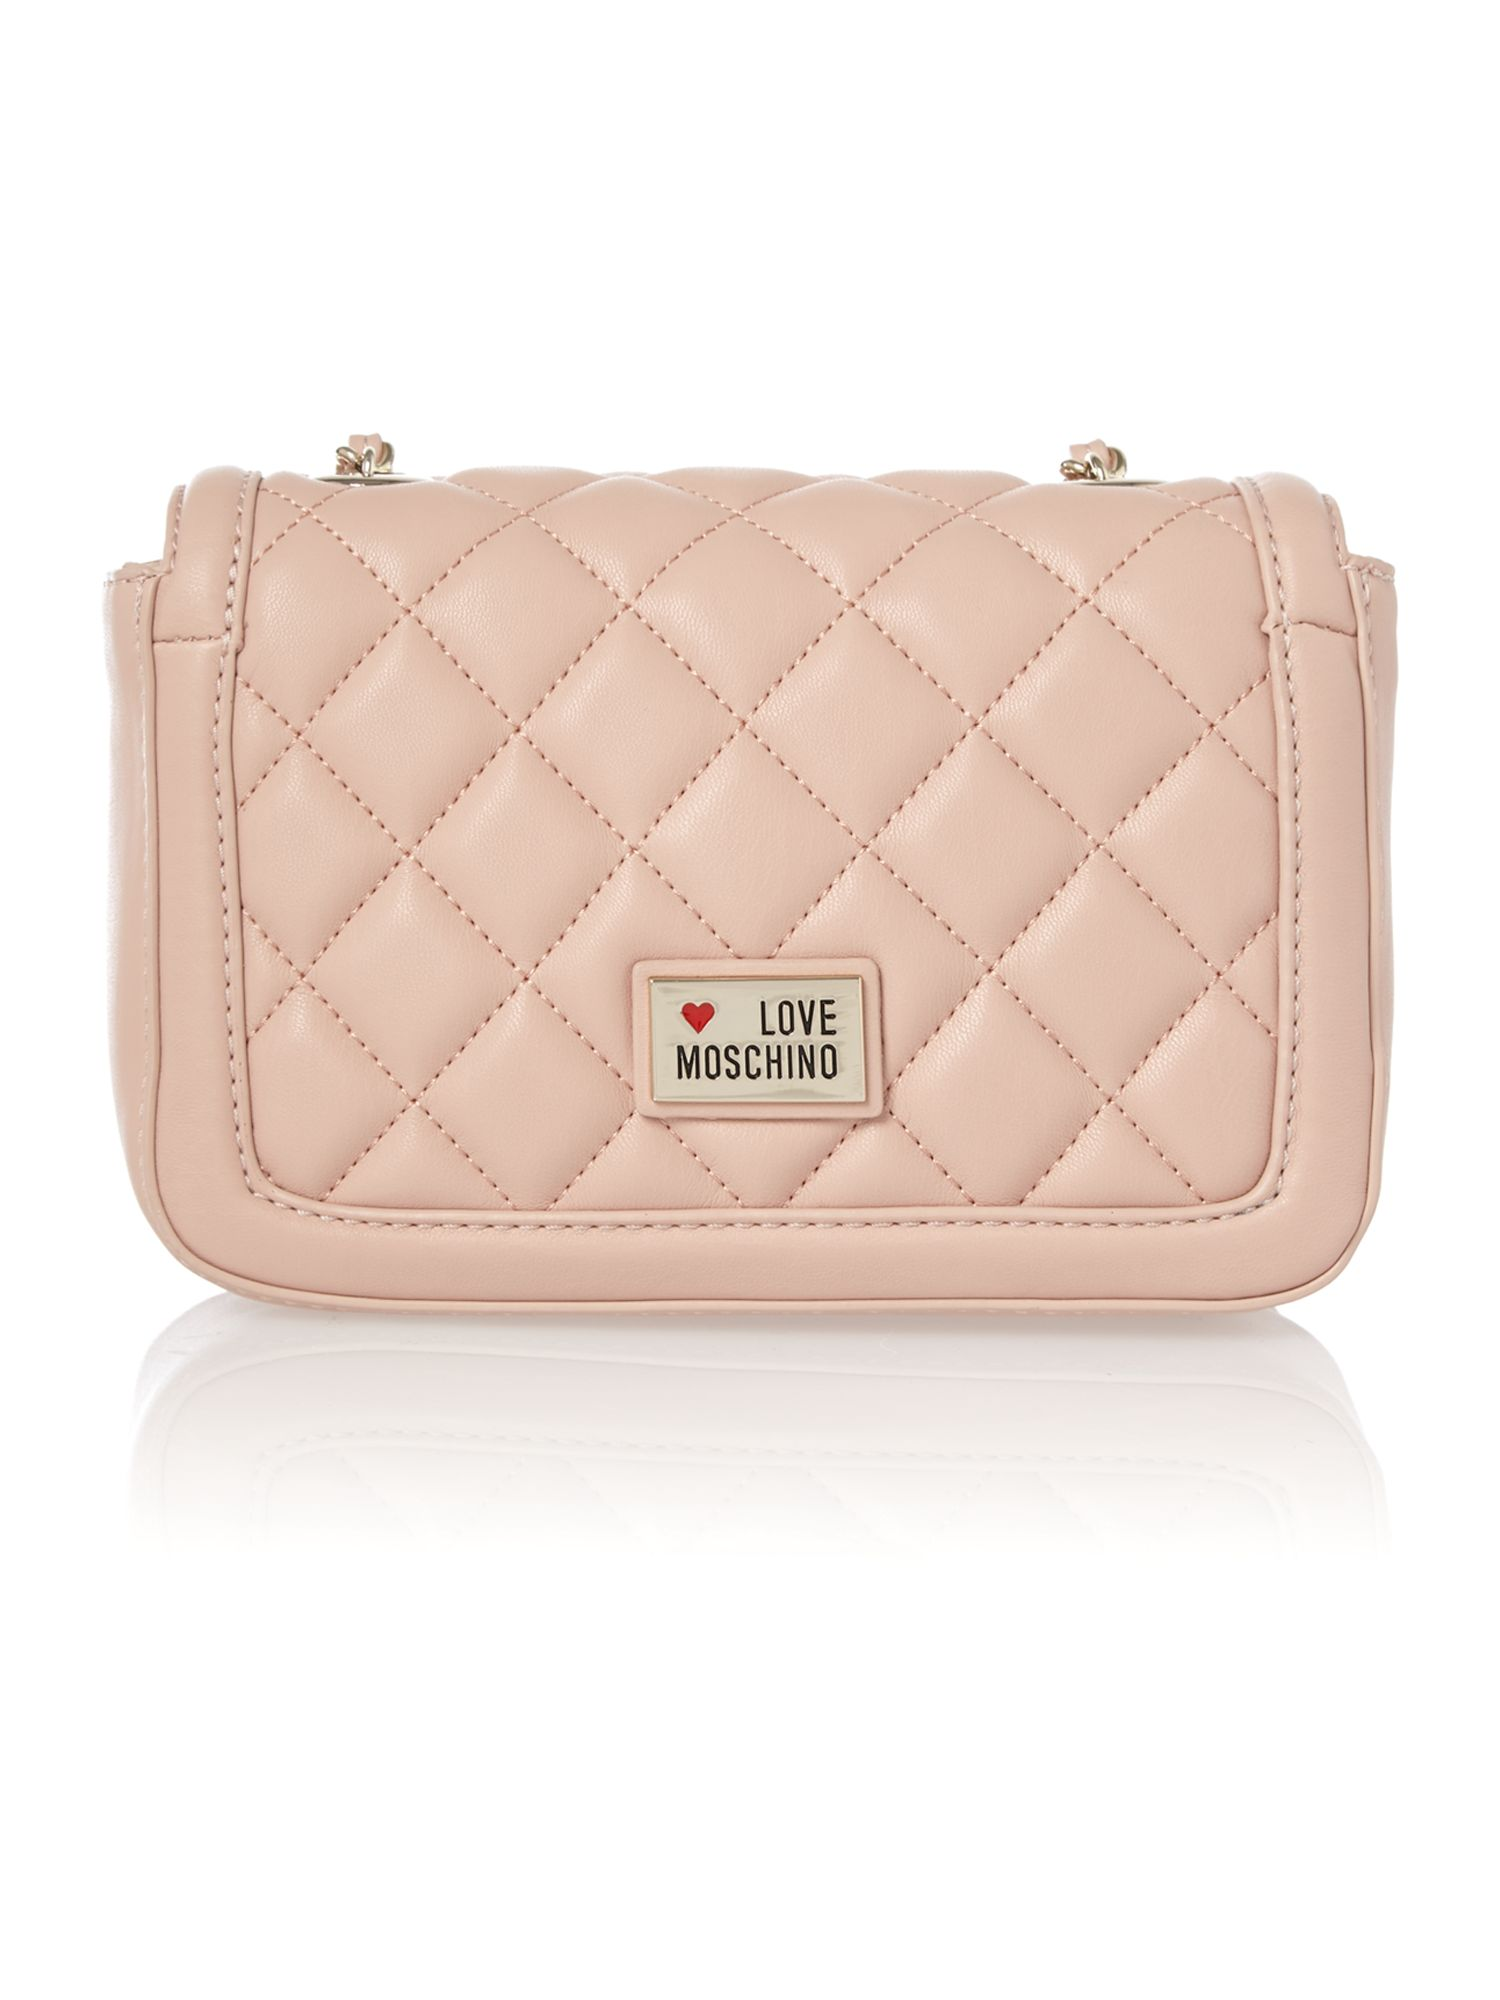 Pale pink quilt flapover shoulder bag